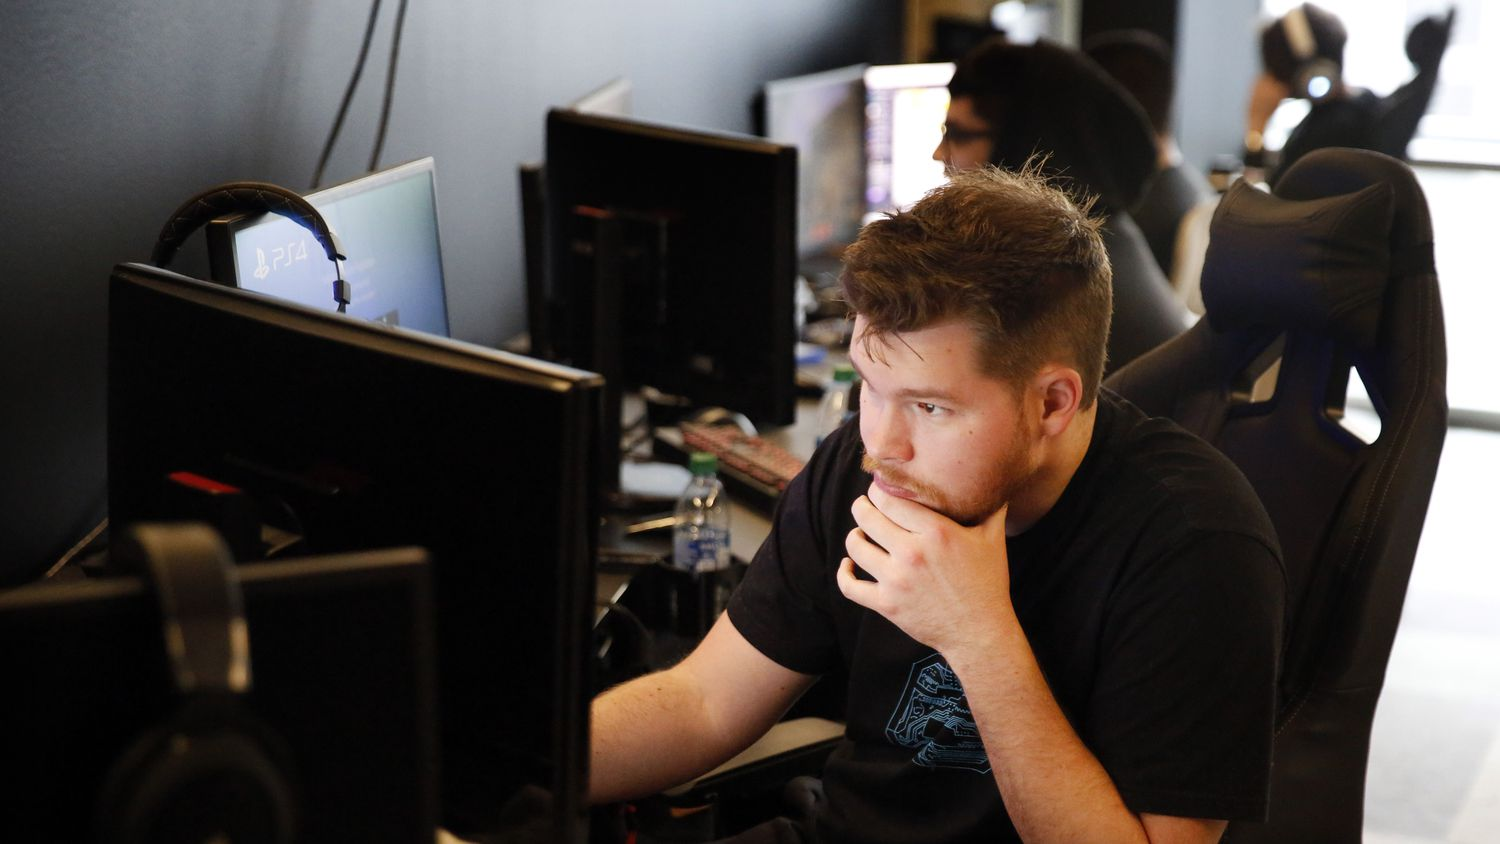 """Dallas Empire's Ian """"Crimsix"""" Porter, a Call of Duty League player, prepares for practice in their new Dallas offices in Victory Park, Wednesday, January 15, 2020. The team of 7 began practice this week in anticipation of the Jan. 24 season opener. (Tom Fox/The Dallas Morning News)"""